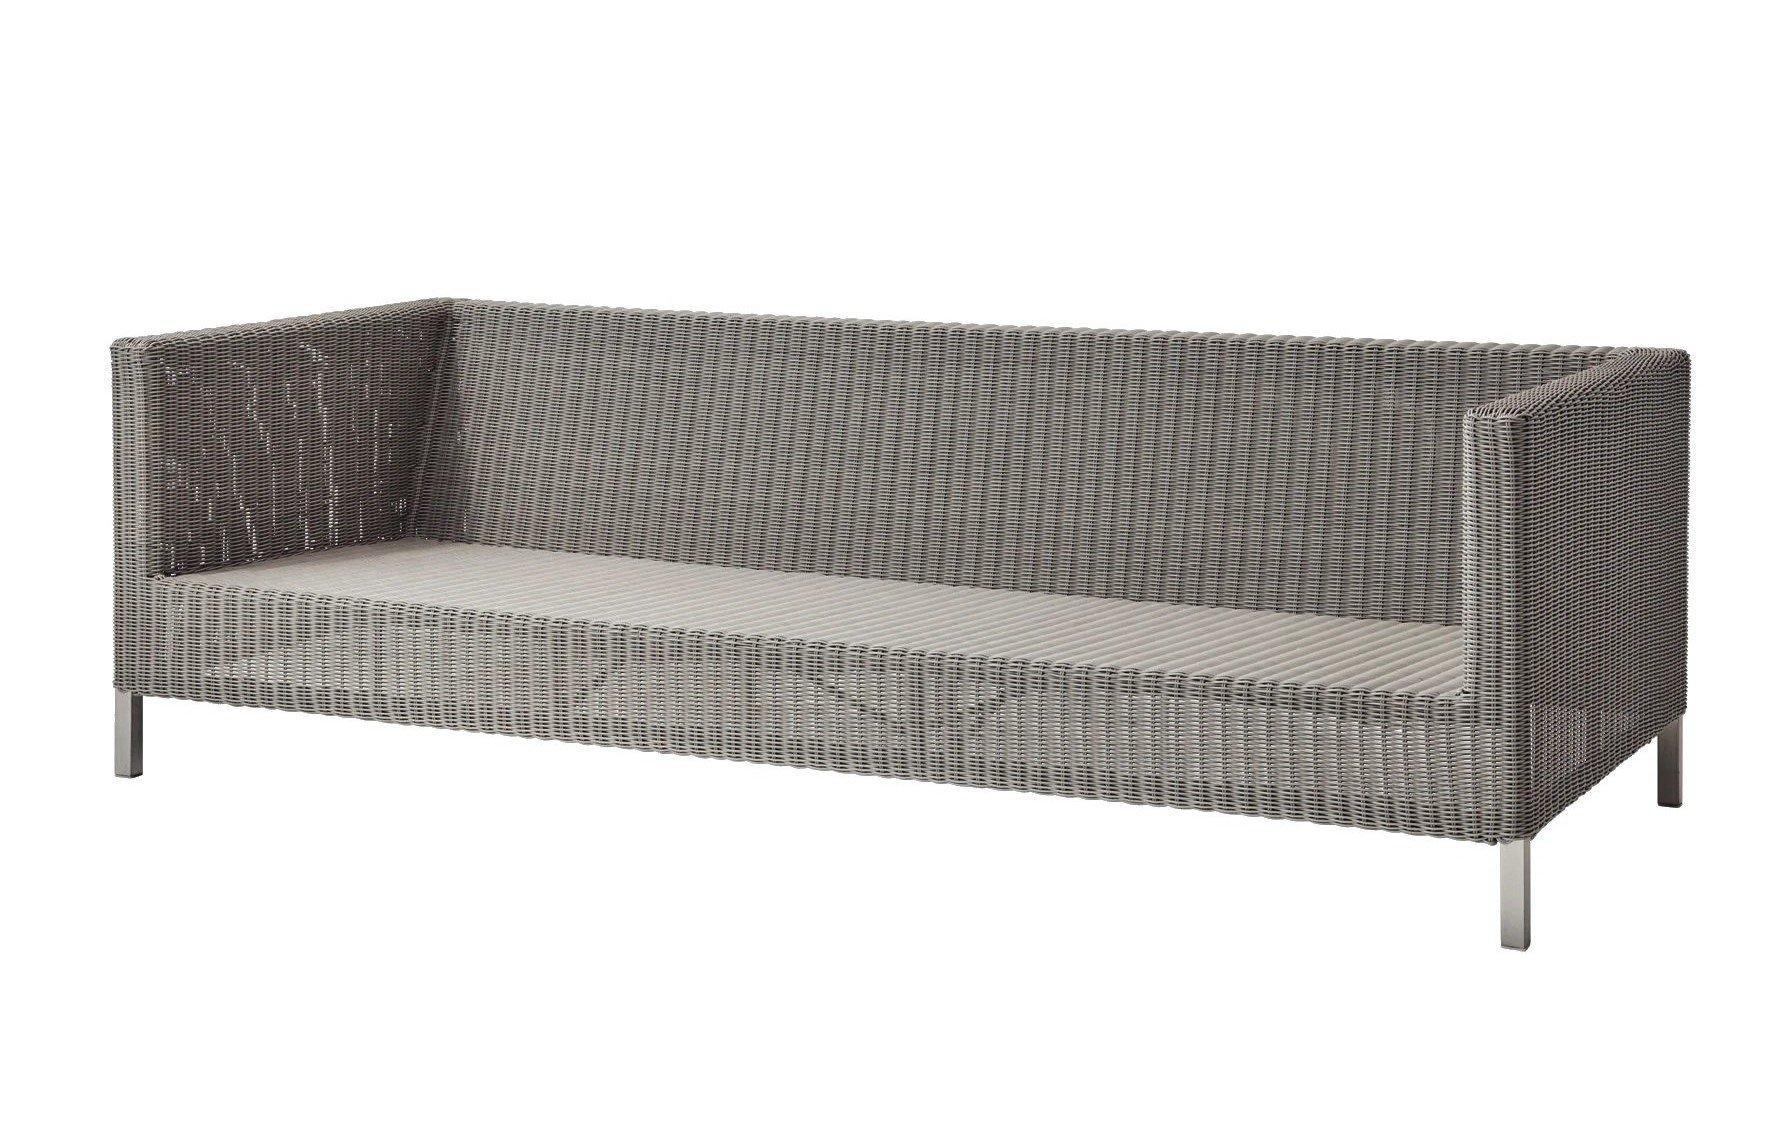 Connect 3-seat Modular Sofa from Cane-line